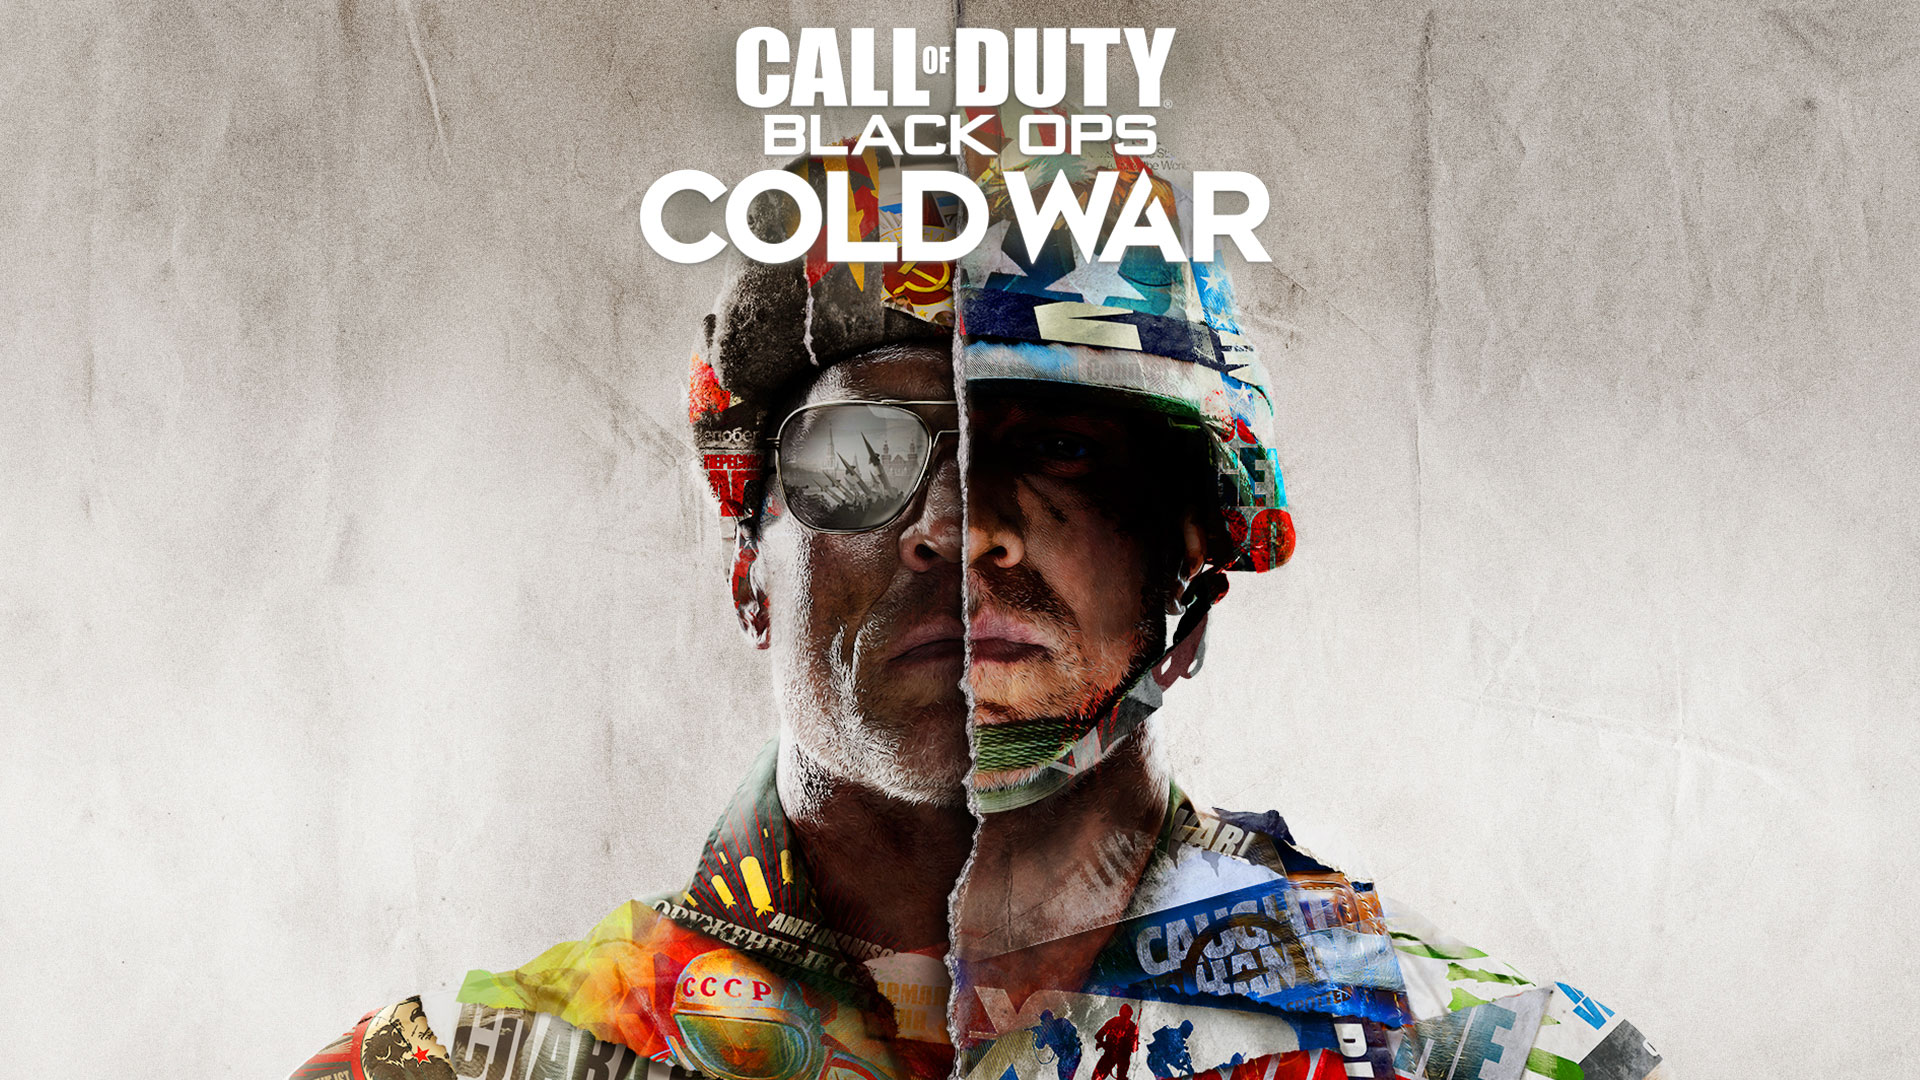 Announcing Call Of Duty Black Ops Cold War